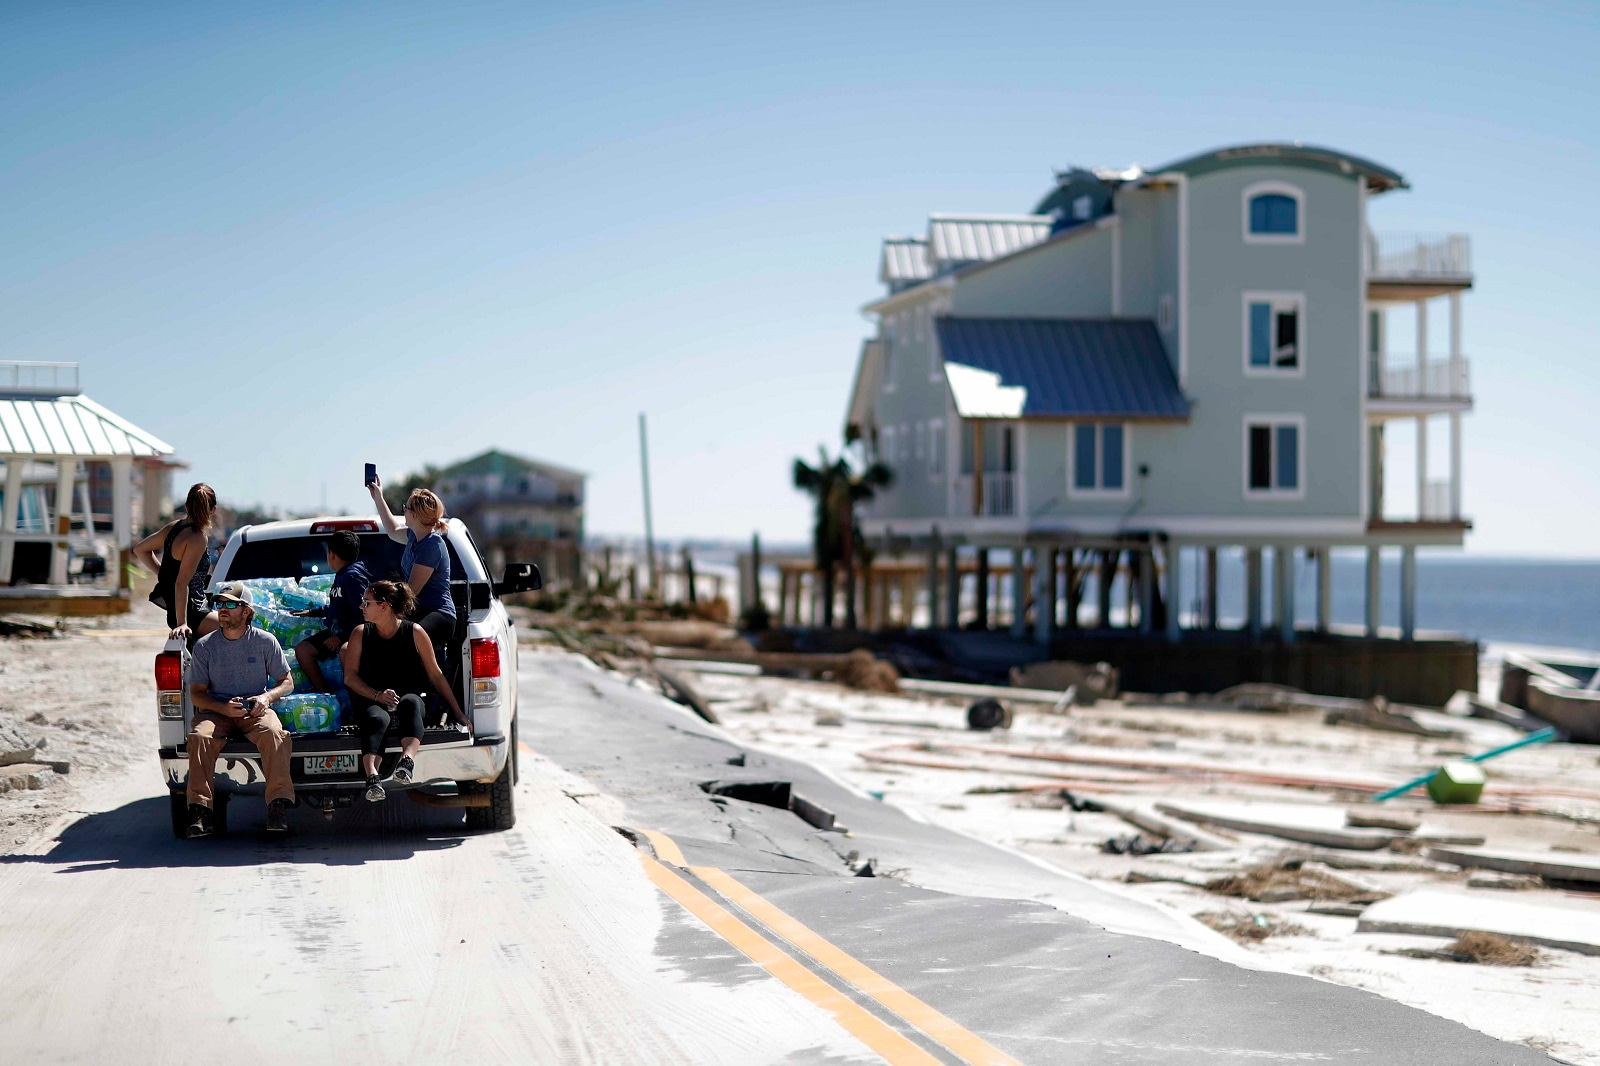 Damaged homes are seen along the water's edge in the aftermath of hurricane Michael. (AP Photo/David Goldman)